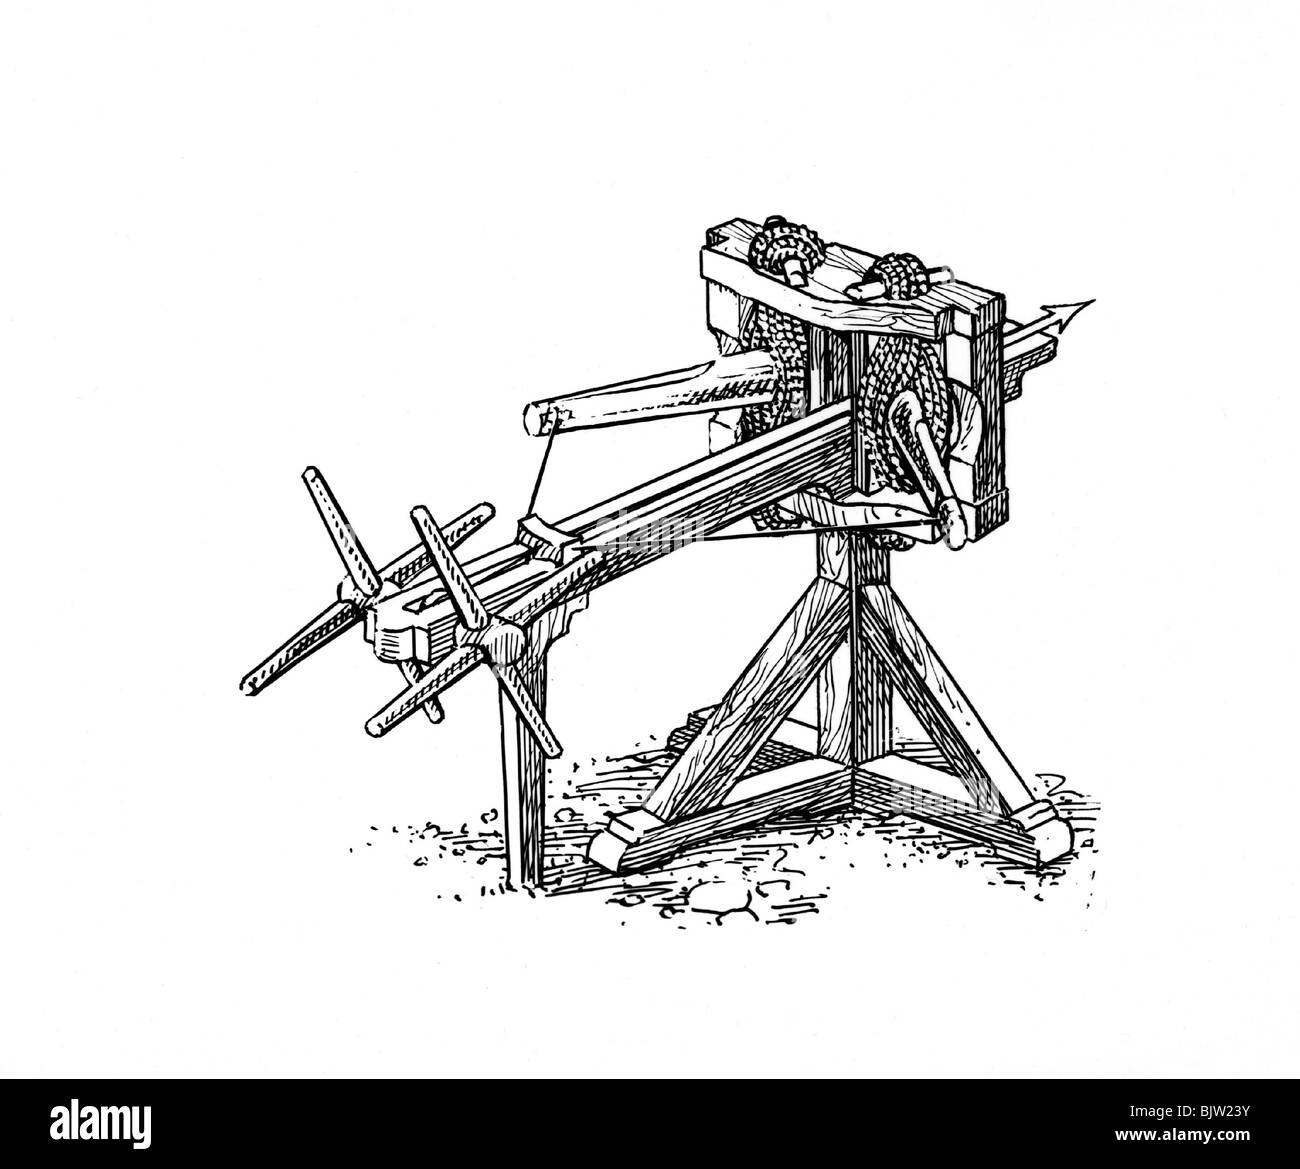 Siege Engine Stock Photos Images Alamy Catapult Motion Diagram Onager Military Ancient World Engines Reconstruction 19th Century Historic